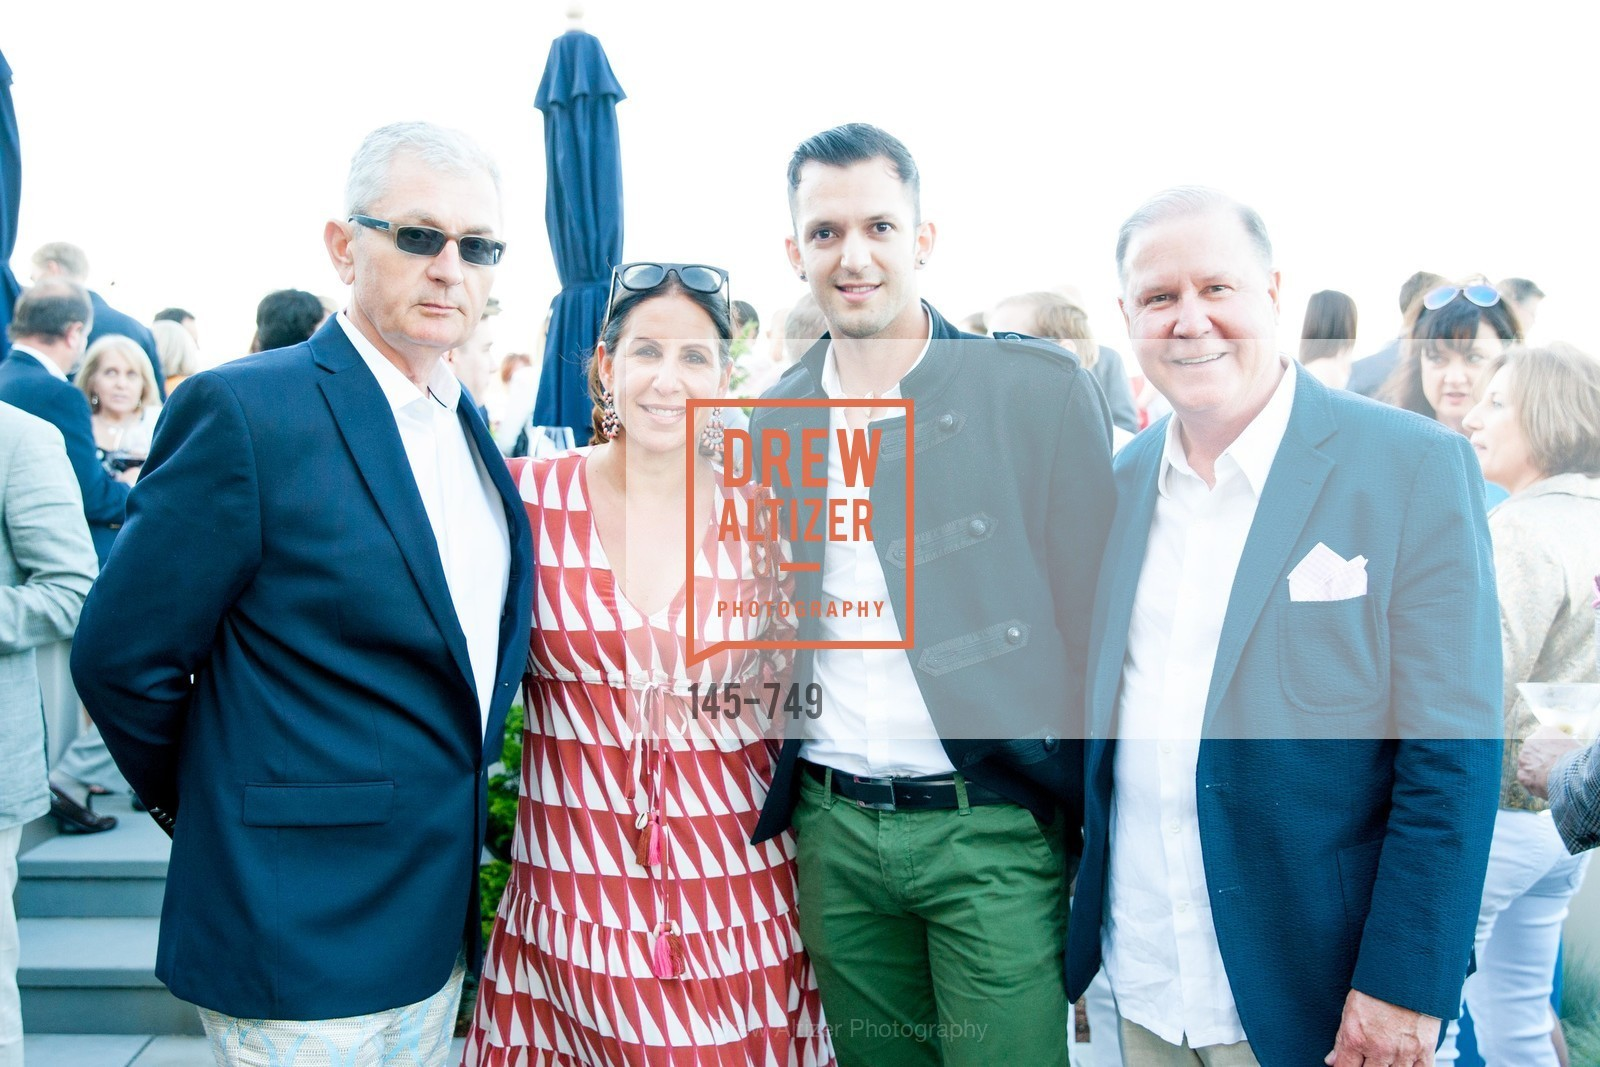 Alain-Martin Piuriet, Lisa Grotts, Efren Espinosa, John Grotts, PETER COPPING Meets and Greets OSCAR DELA RENTA Clients and Associates at NEIMAN MARCUS, US, May 23rd, 2015,Drew Altizer, Drew Altizer Photography, full-service agency, private events, San Francisco photographer, photographer california